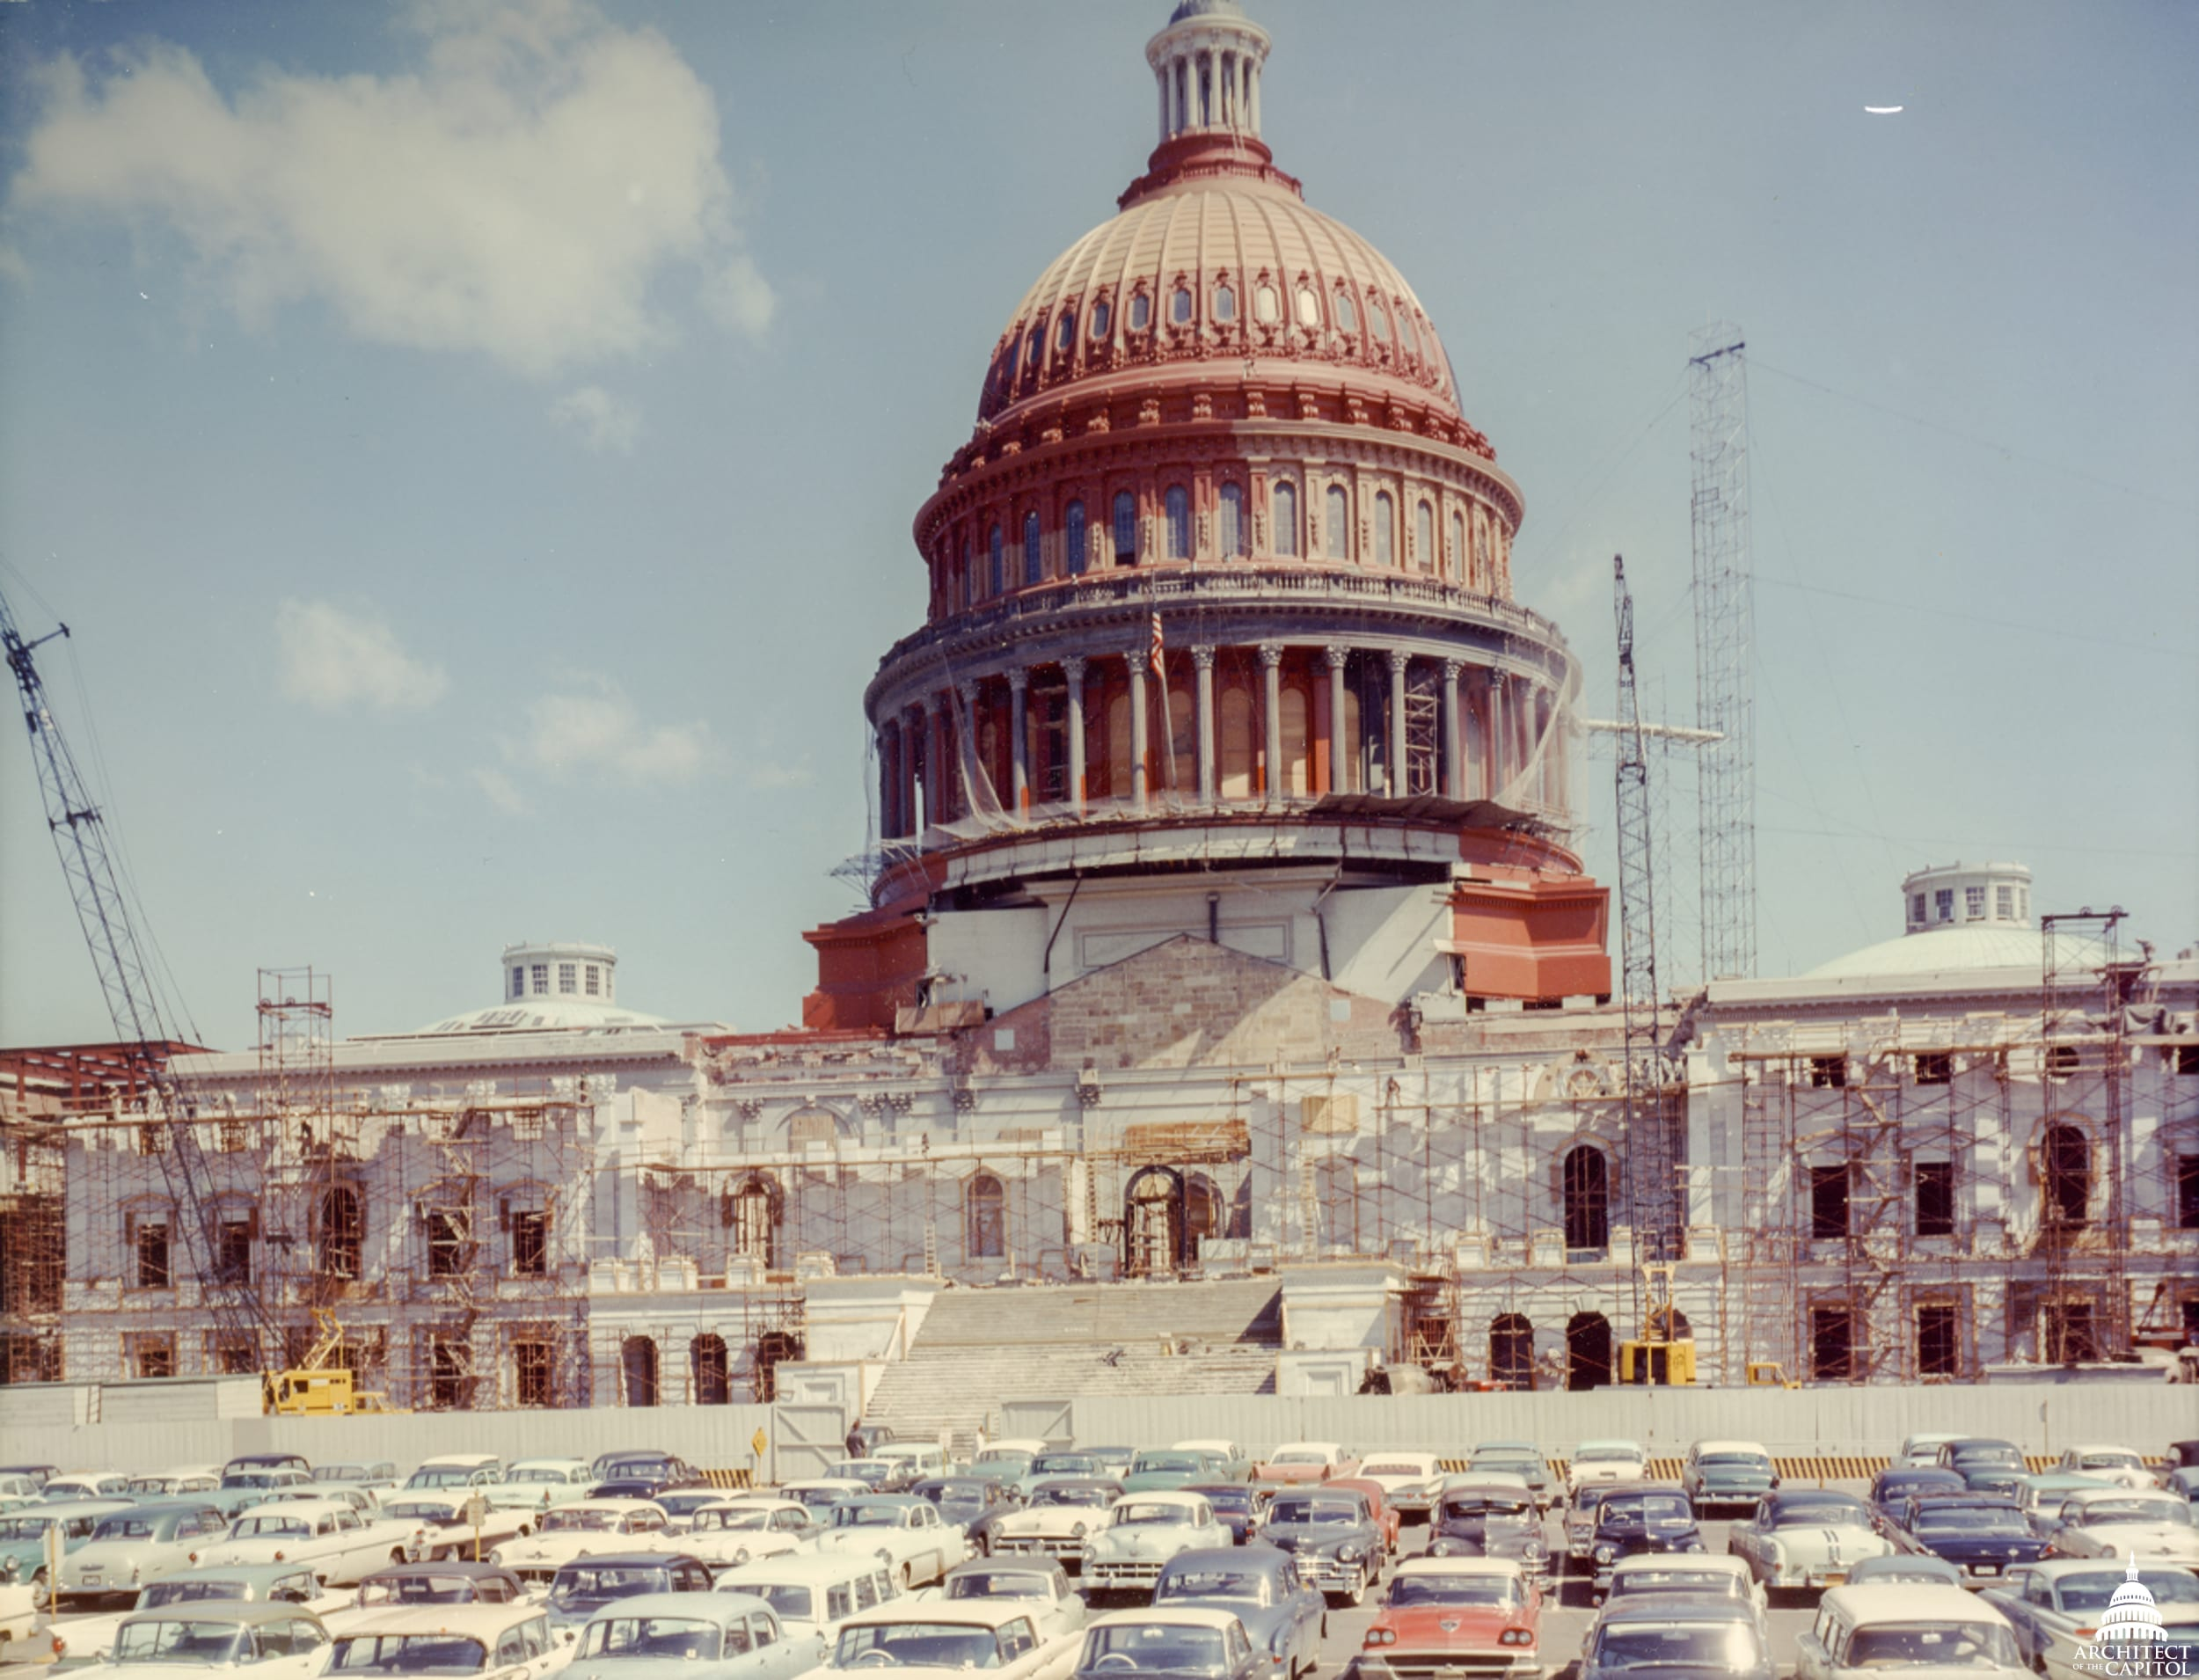 In late 1959 through 1960, the Capitol Dome underwent a significant repair and restoration effort and at the end of 1959 the exterior of the Dome was surrounded by scaffold.